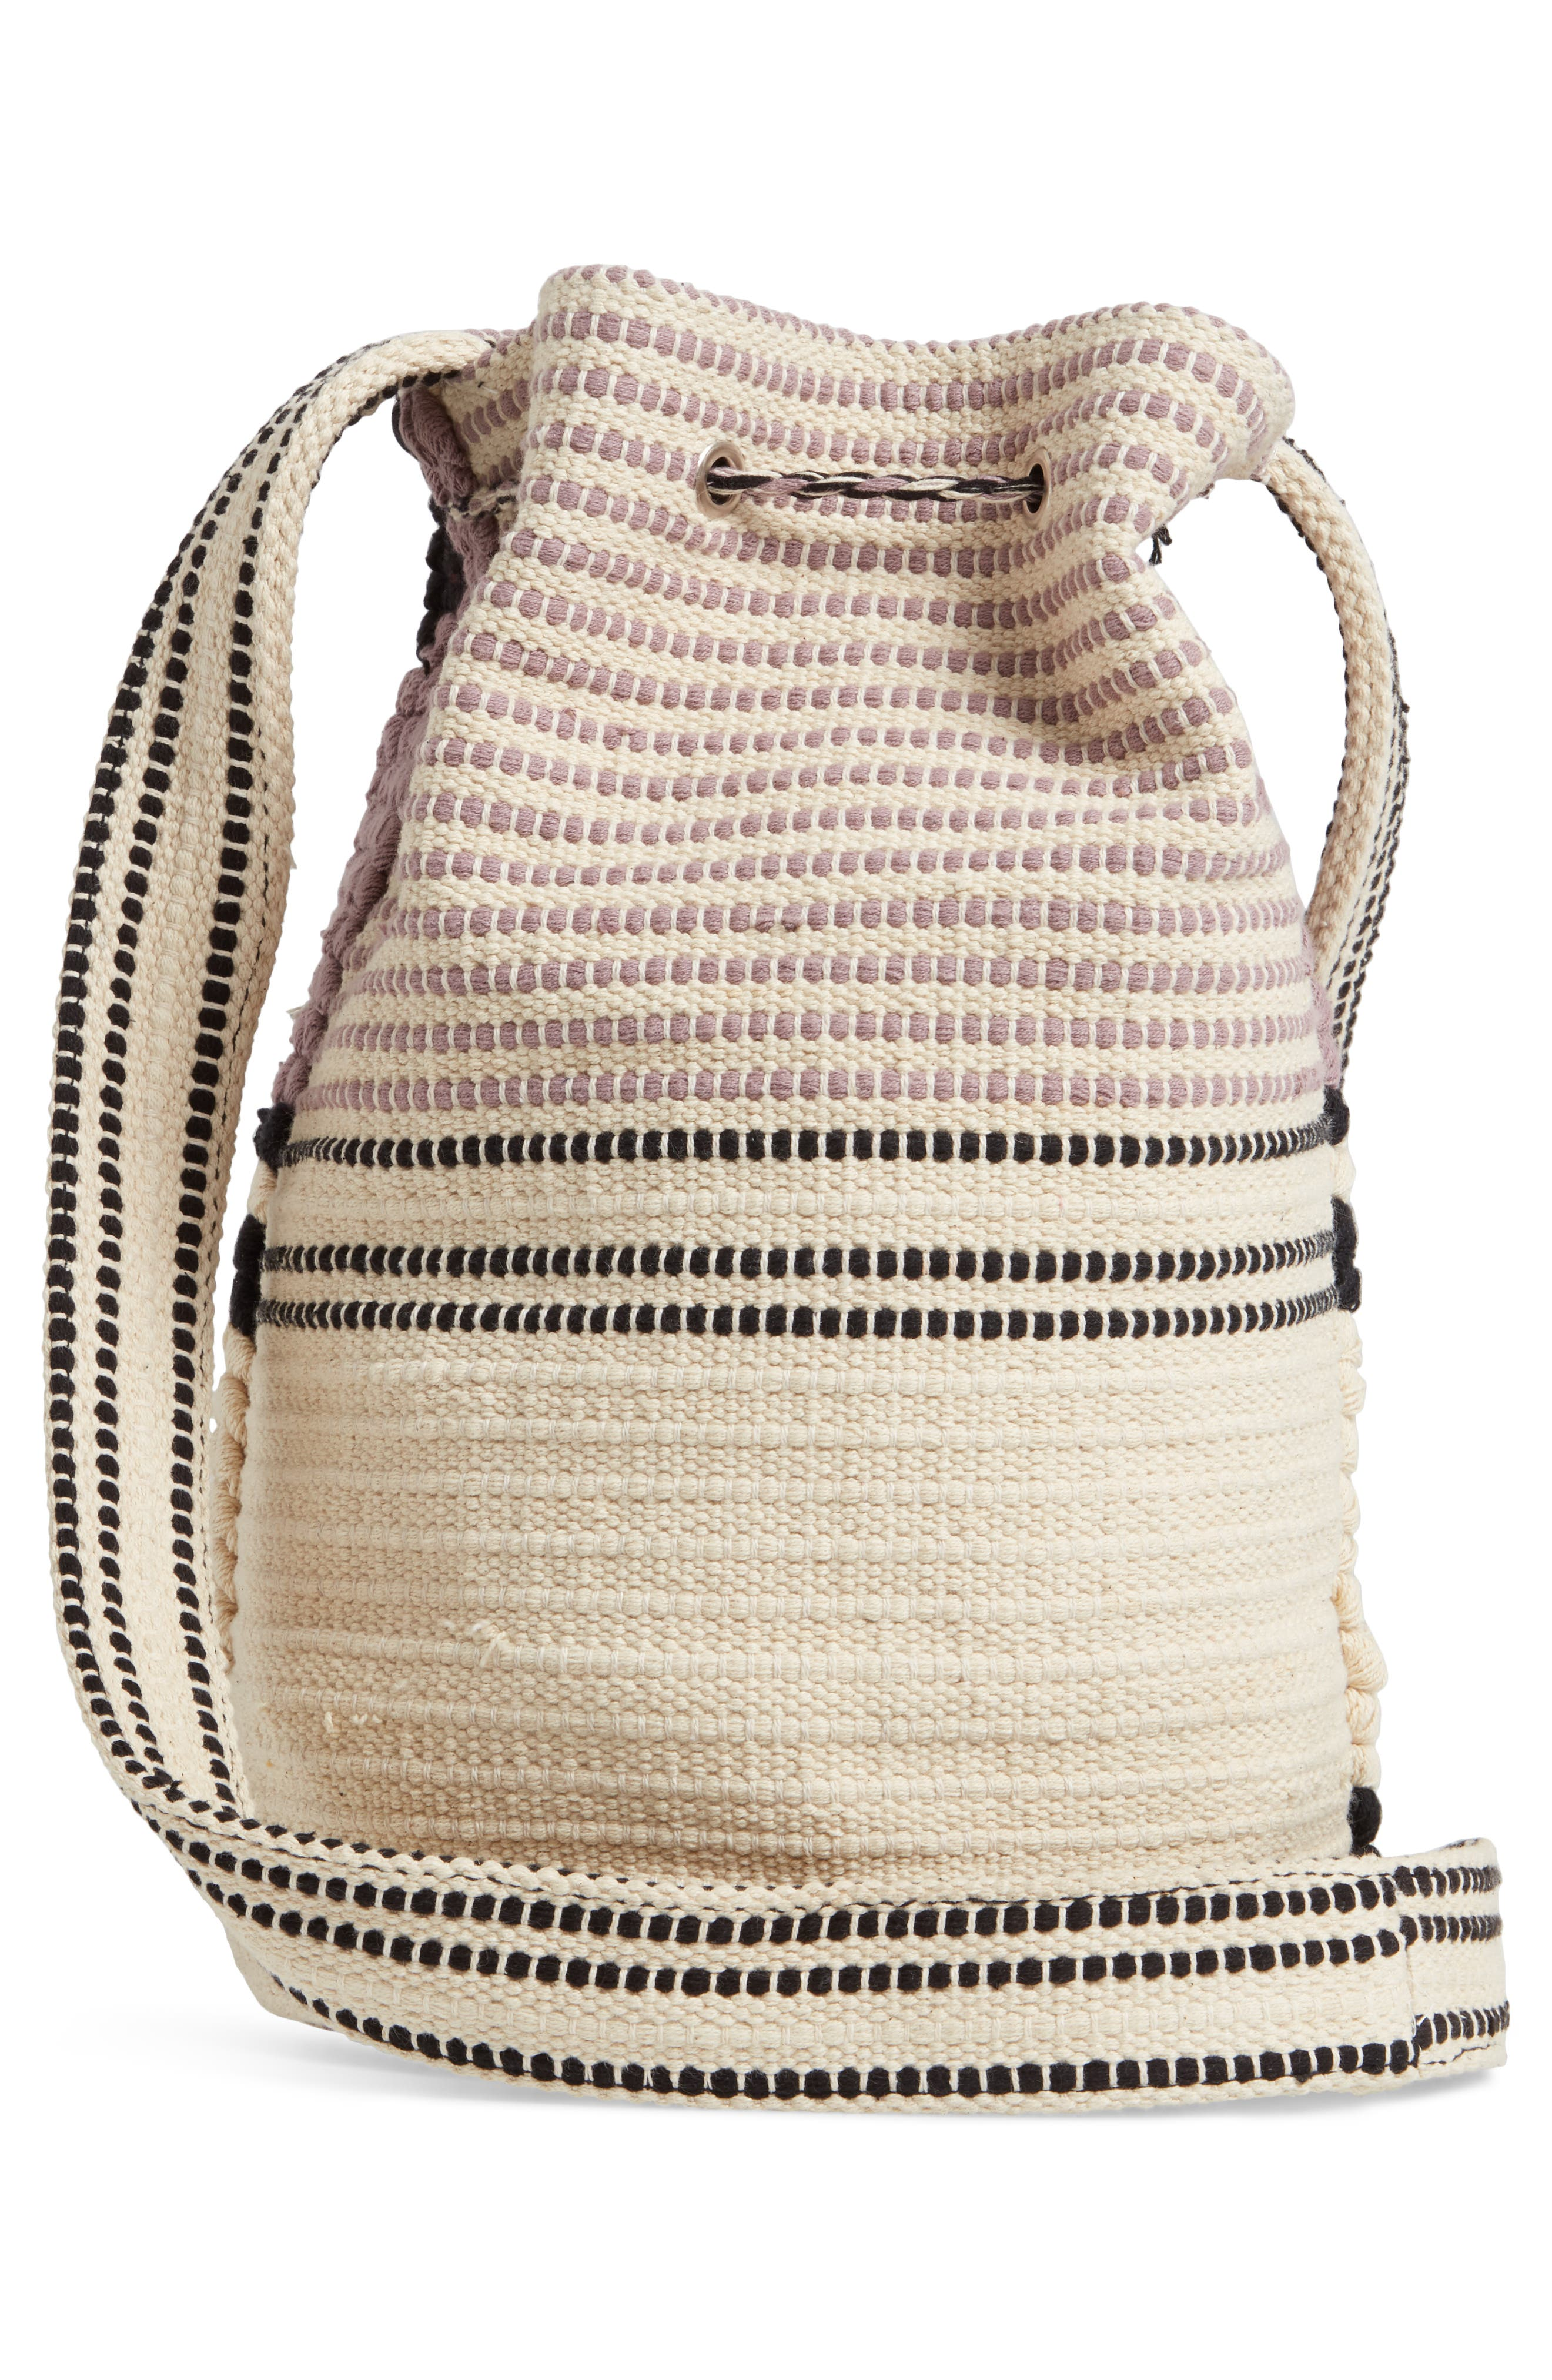 Halay Woven Bucket Bag,                             Alternate thumbnail 3, color,                             BLACK/ CREAM